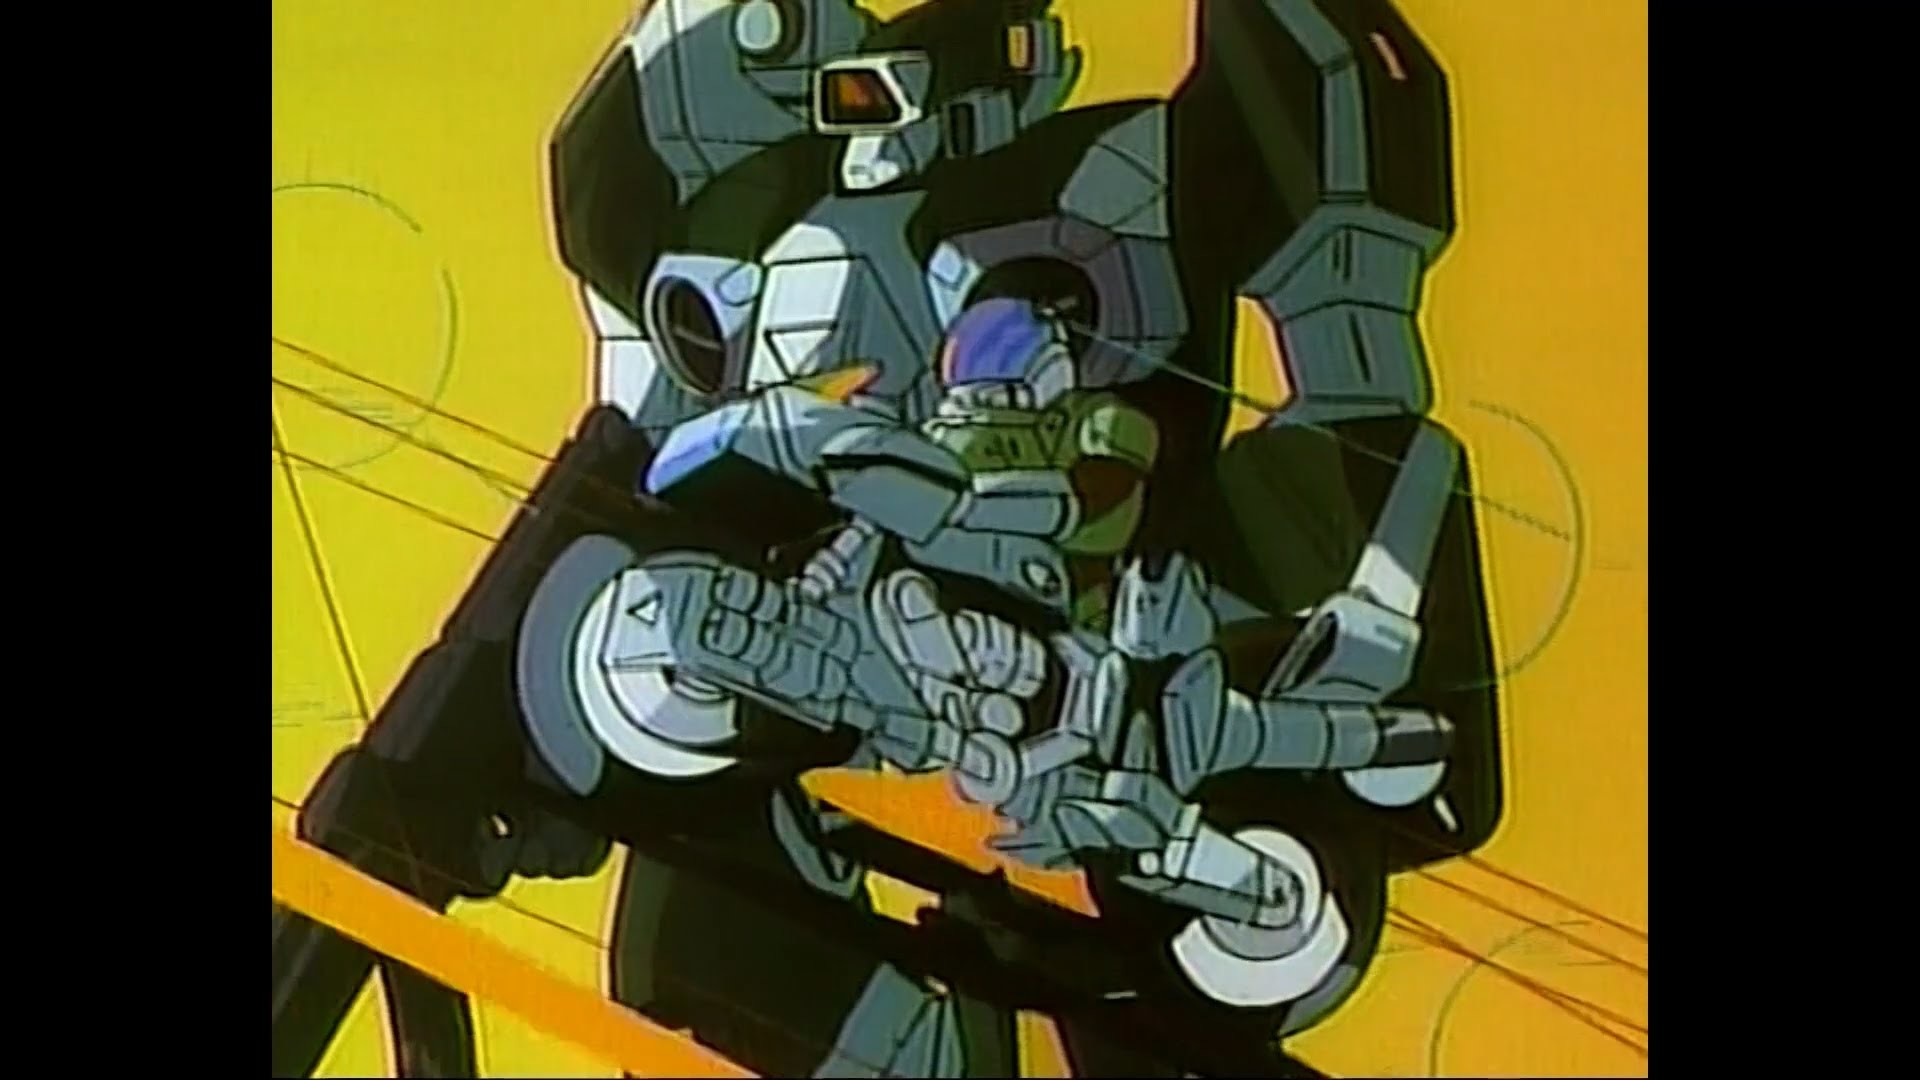 Awesome 80's Cartoon and TV Show Intros ROBOTECH Remaster New Generation –  YouTube